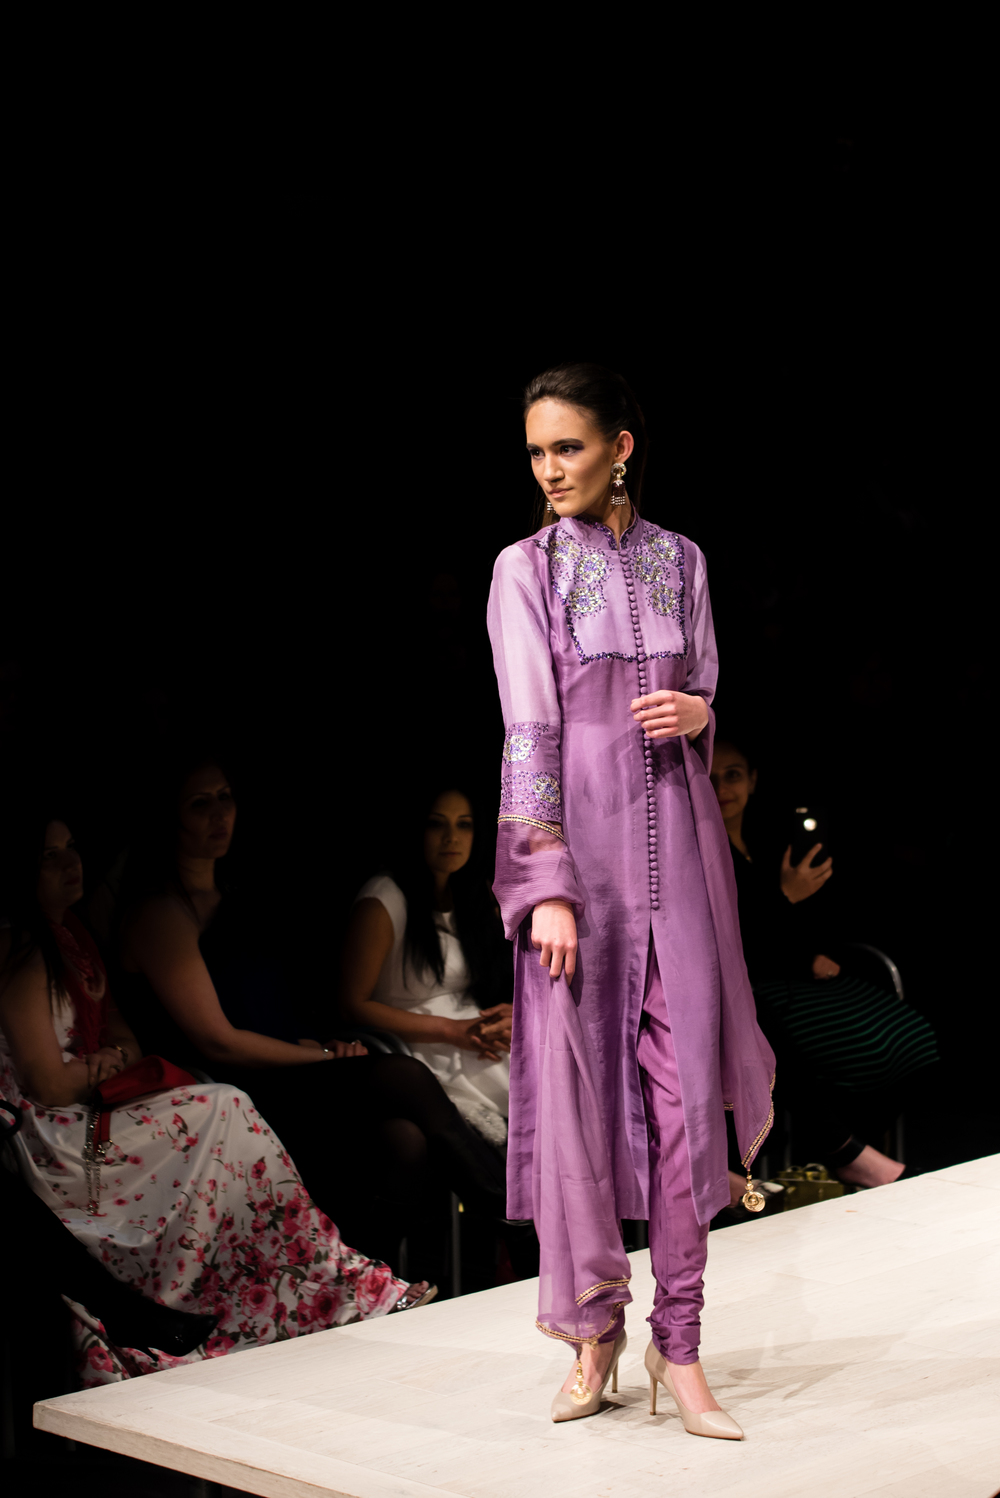 Sher Khan Niazi-WCFW-Asian-3660.jpg